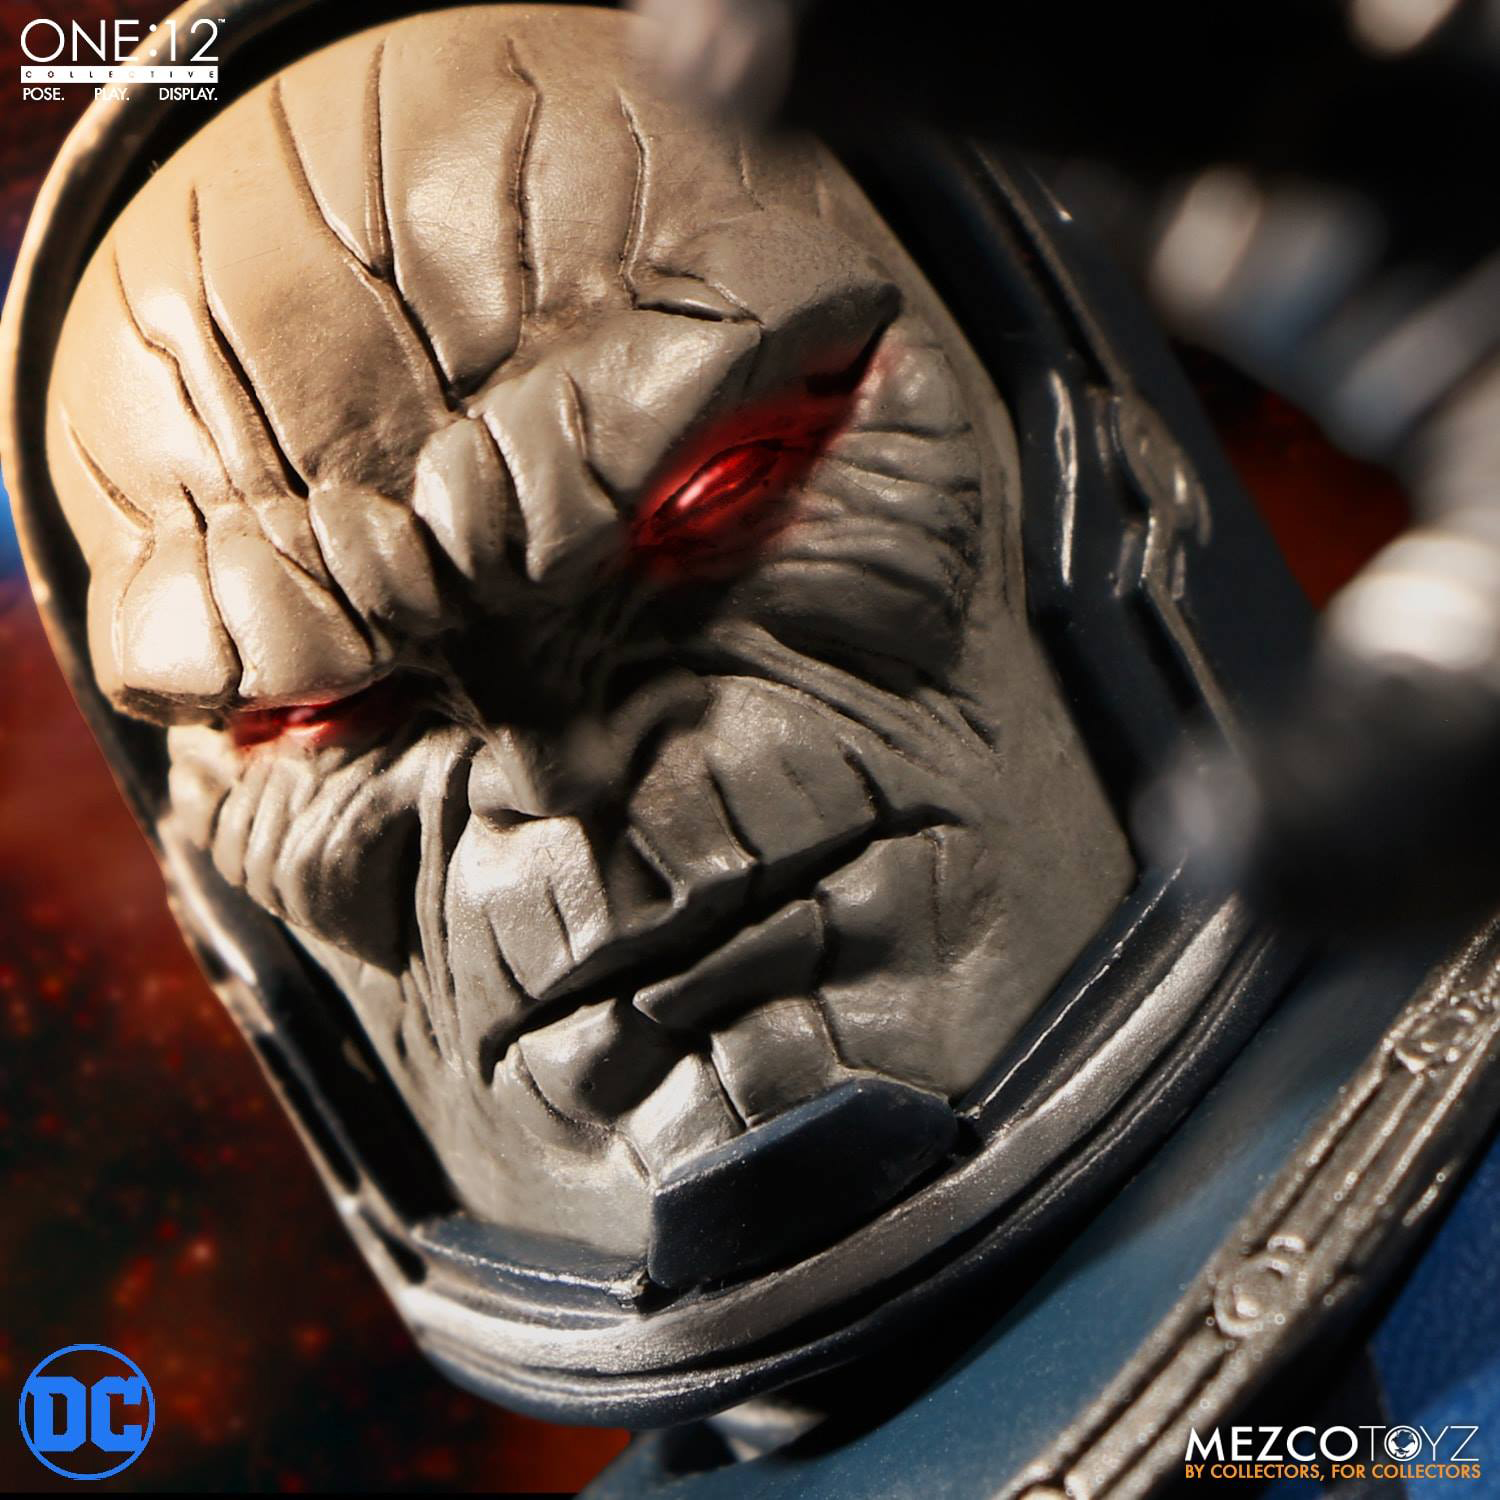 darkseid-mezco-one-12-collecgtive-figure-preview